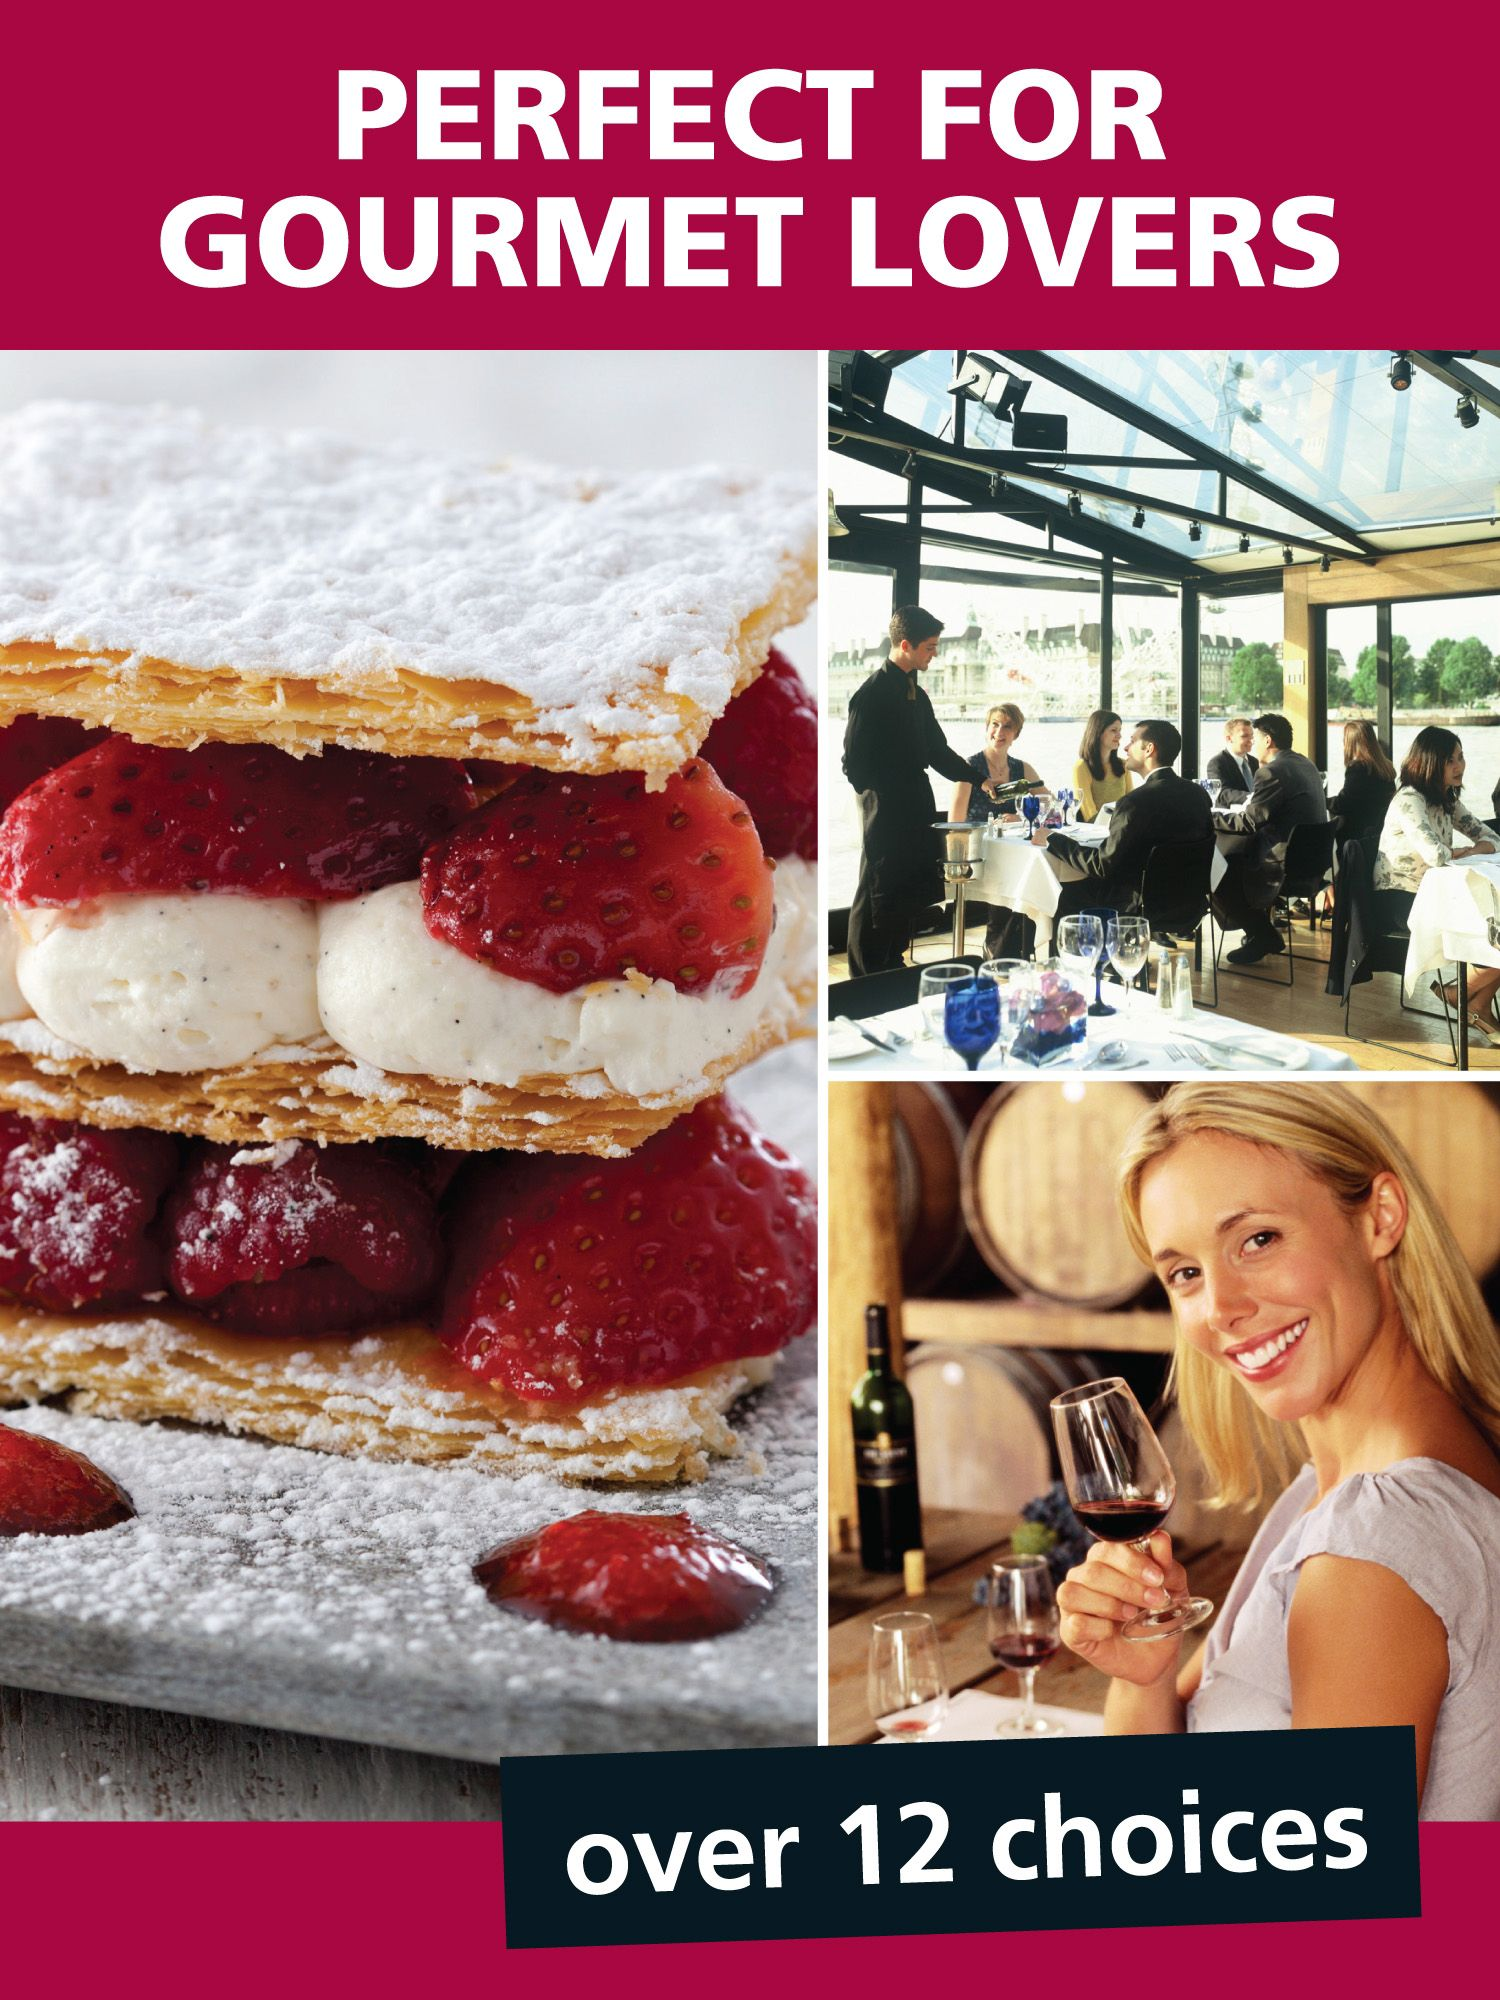 Perfect for gourmet lovers